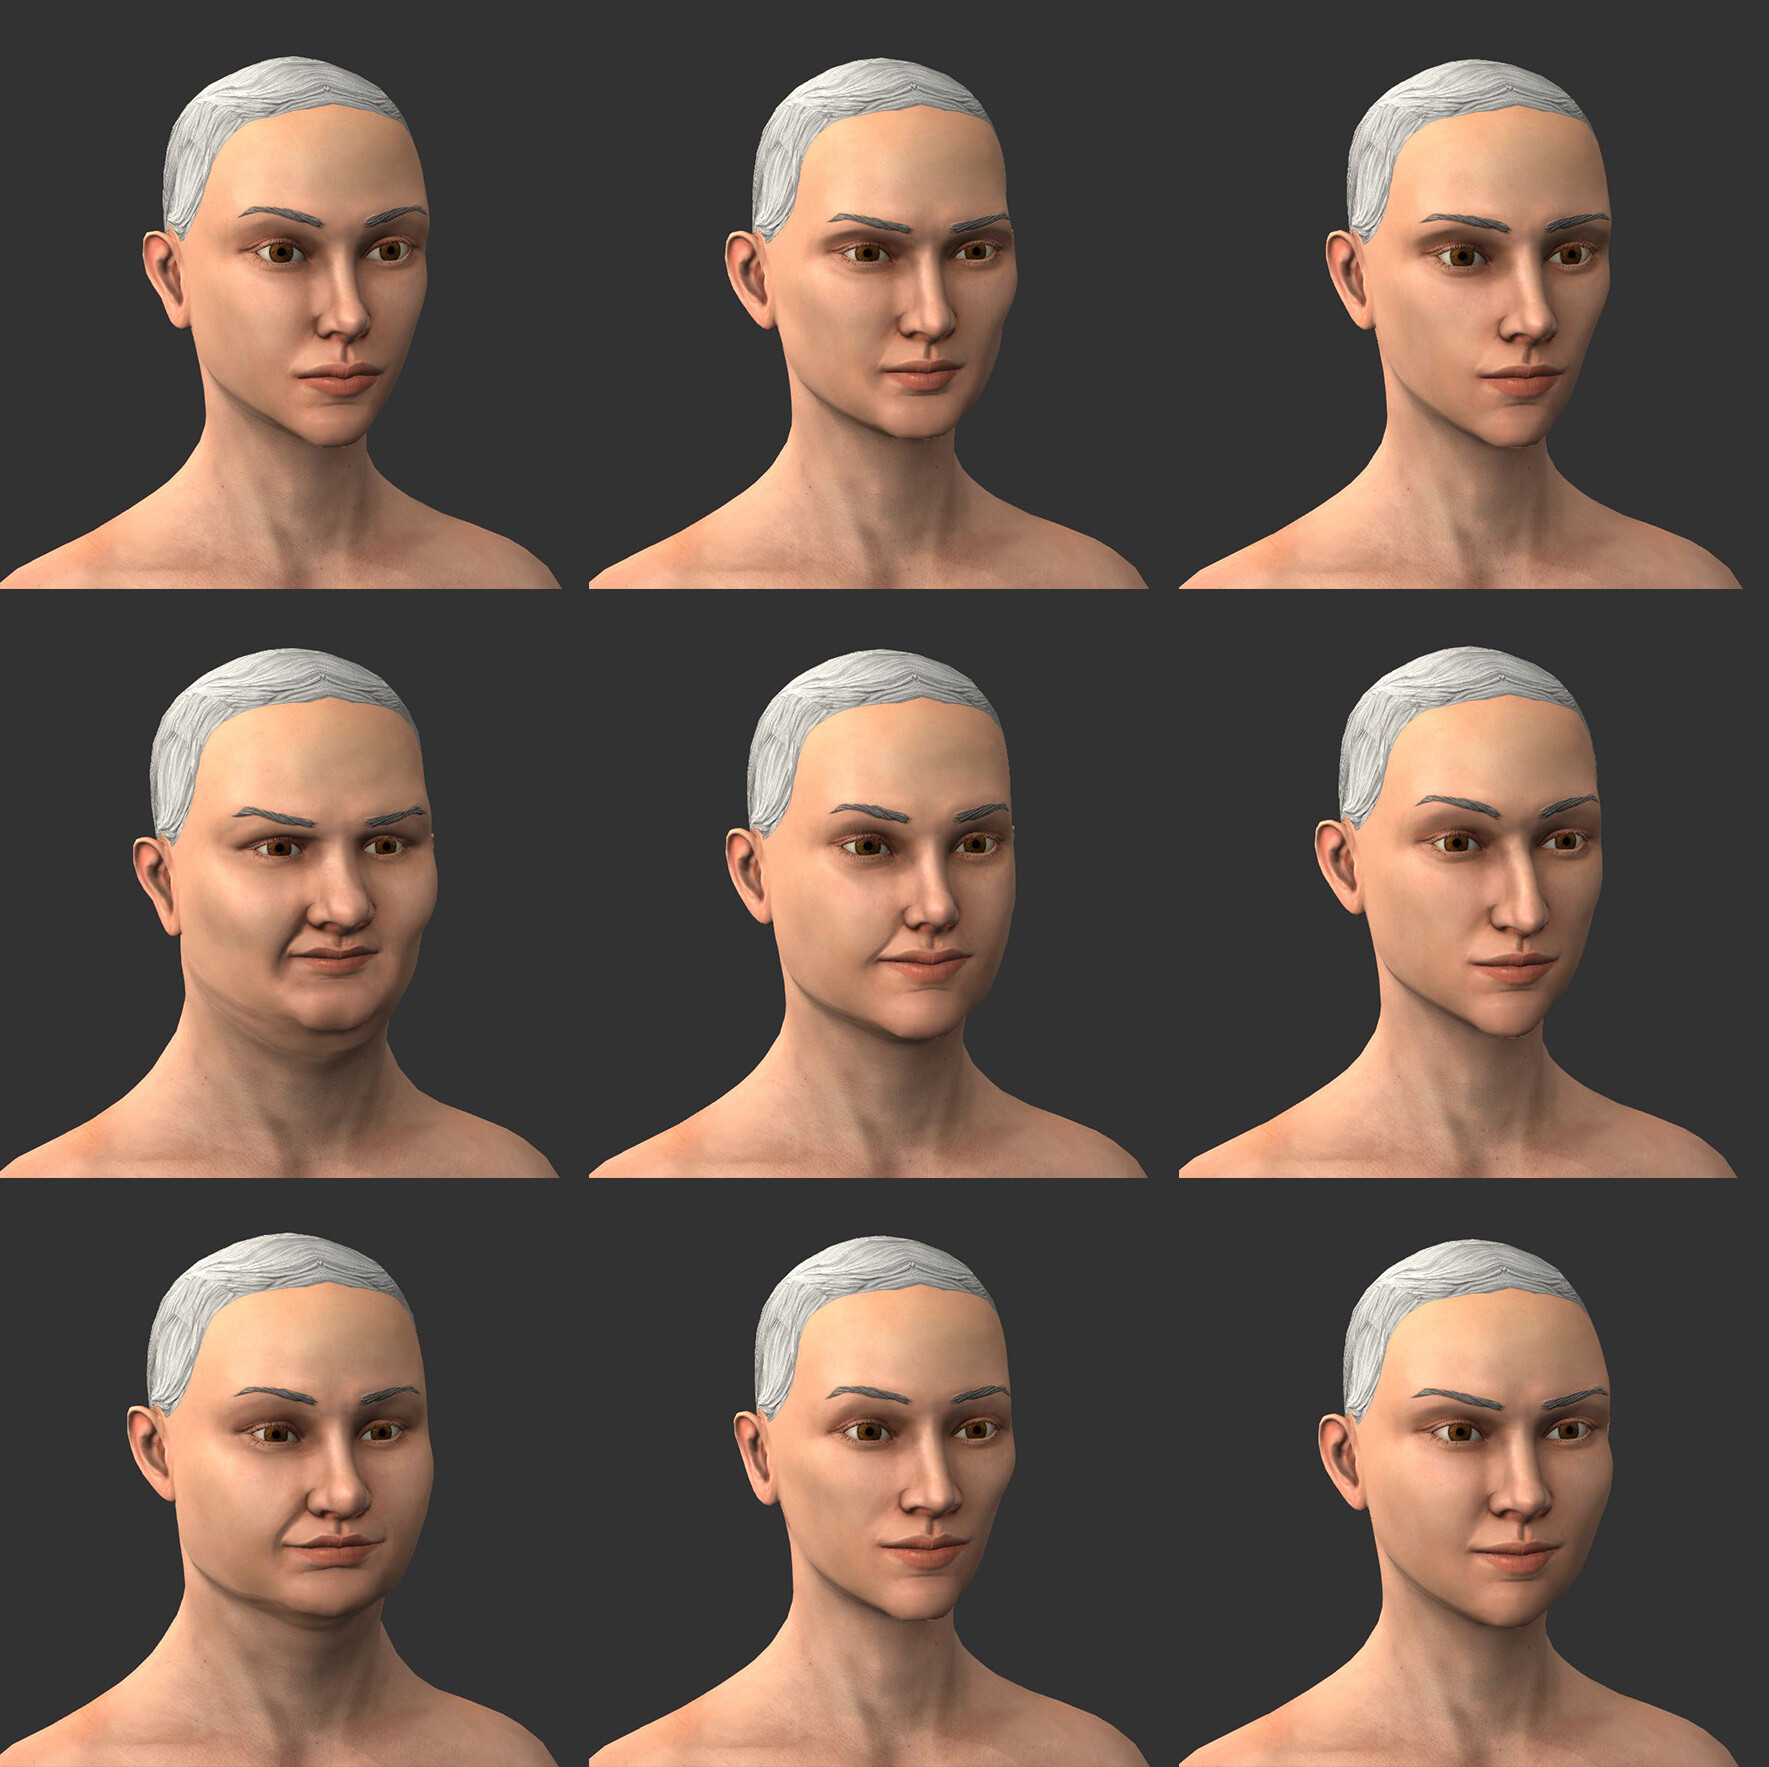 Woman Head Variations